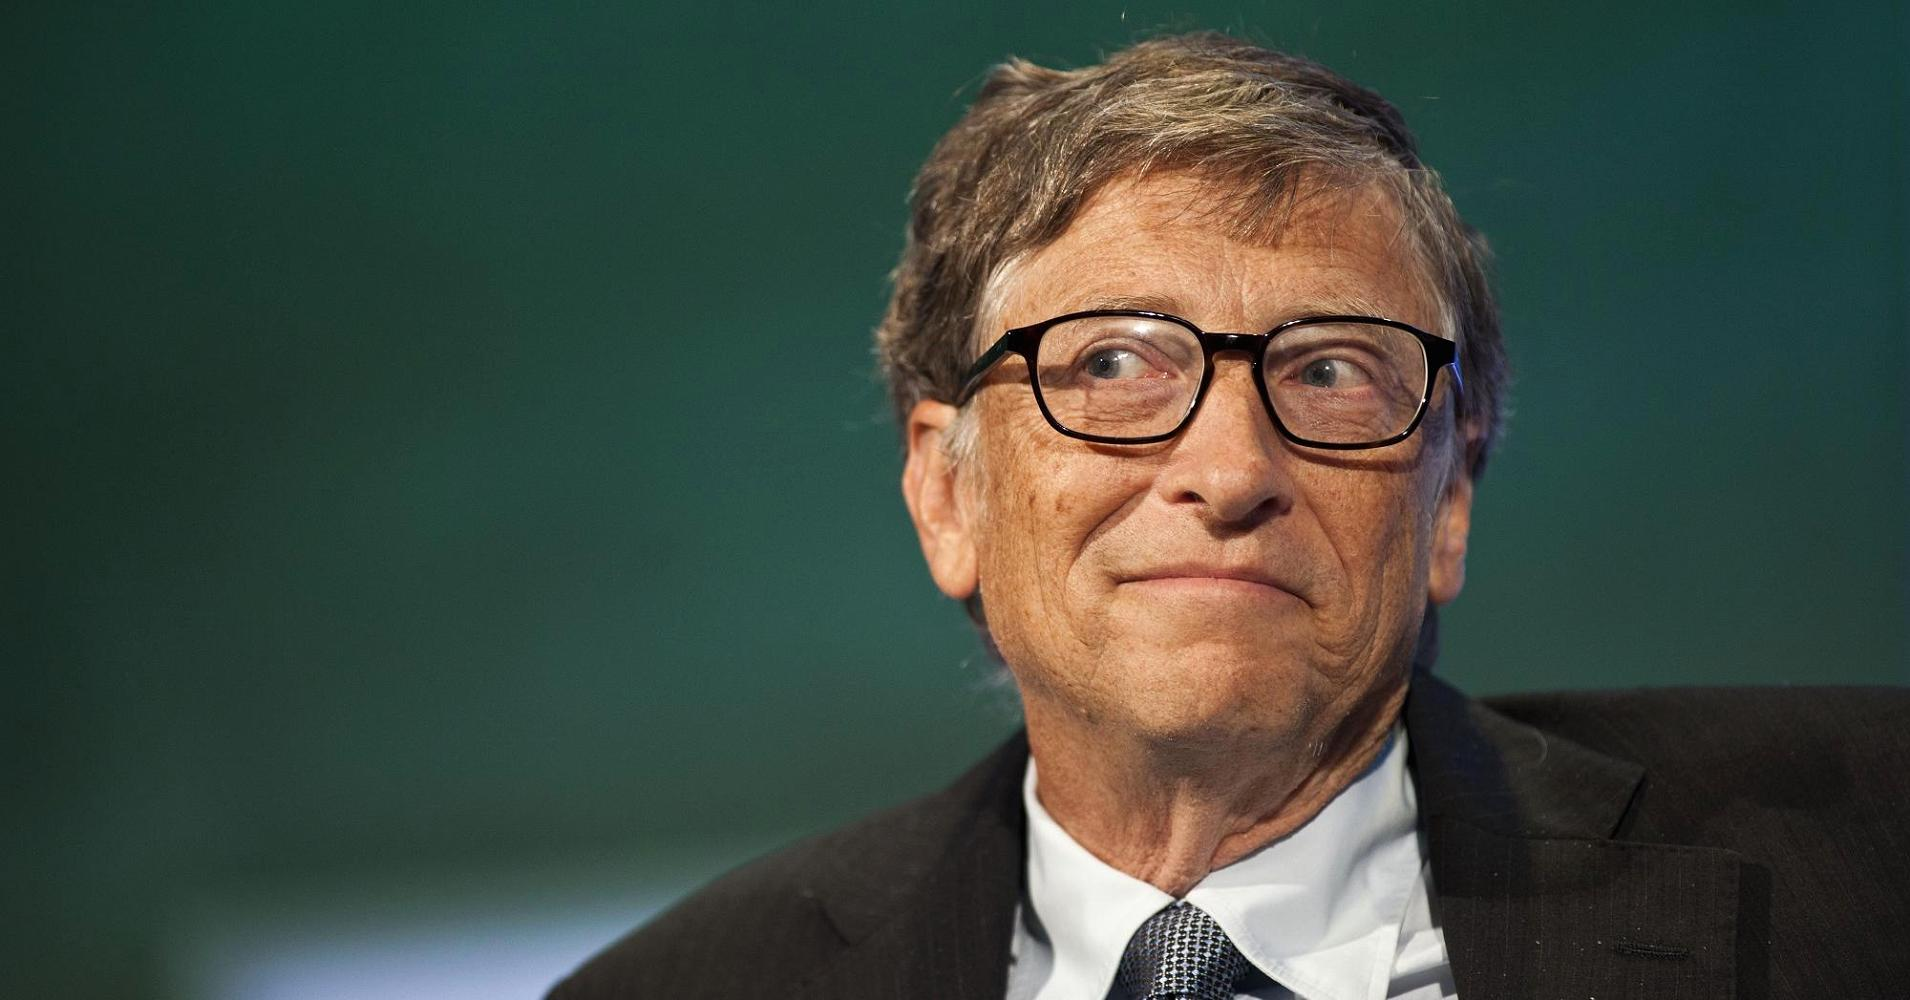 Bill Gates is Buying Land in Arizona to Build a